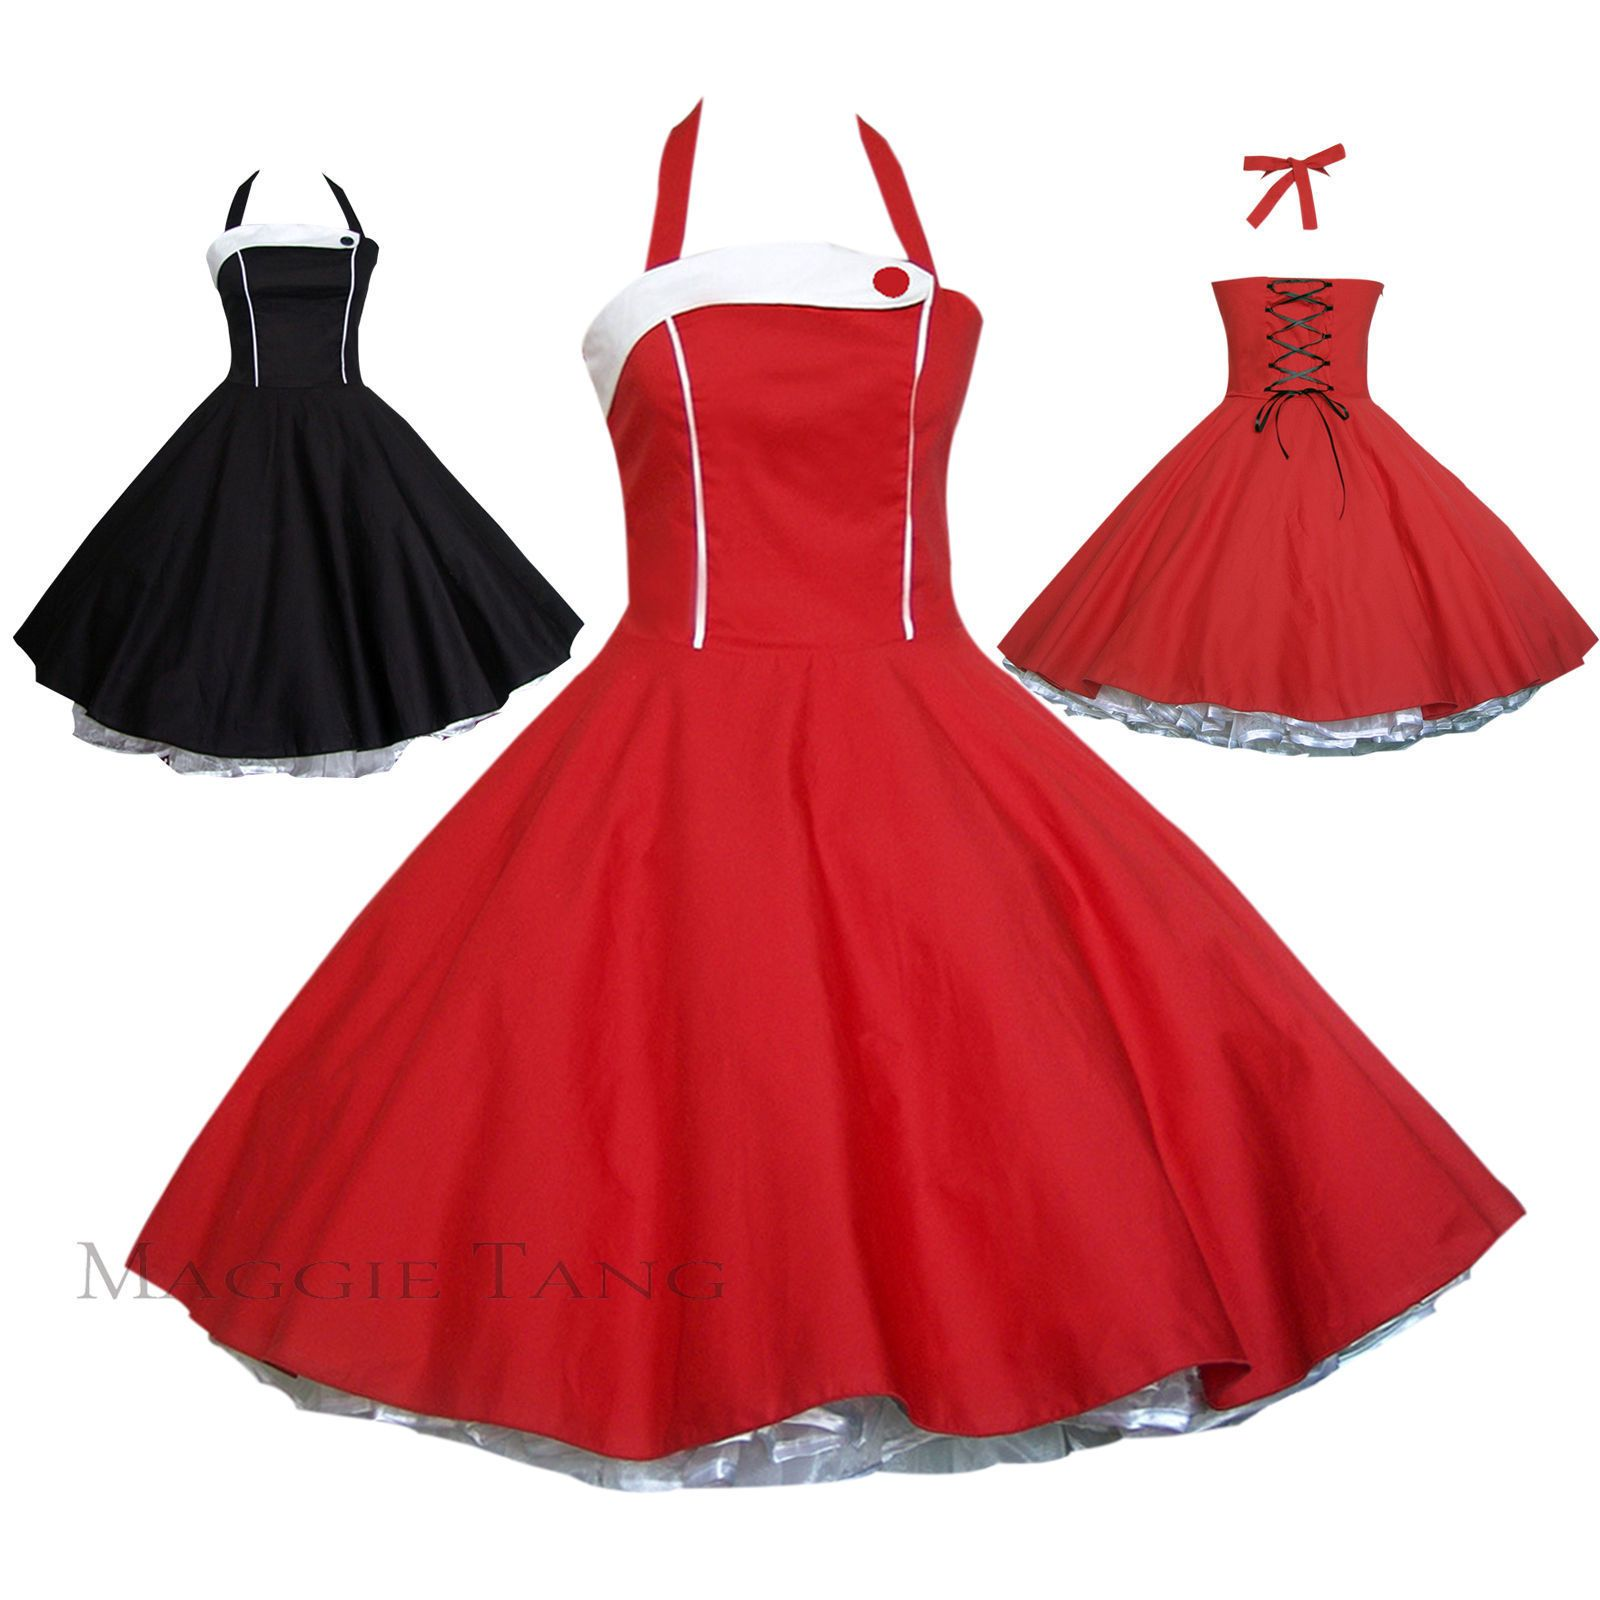 Maggie tang s vtg retro pinup housewife rockabilly black red swing